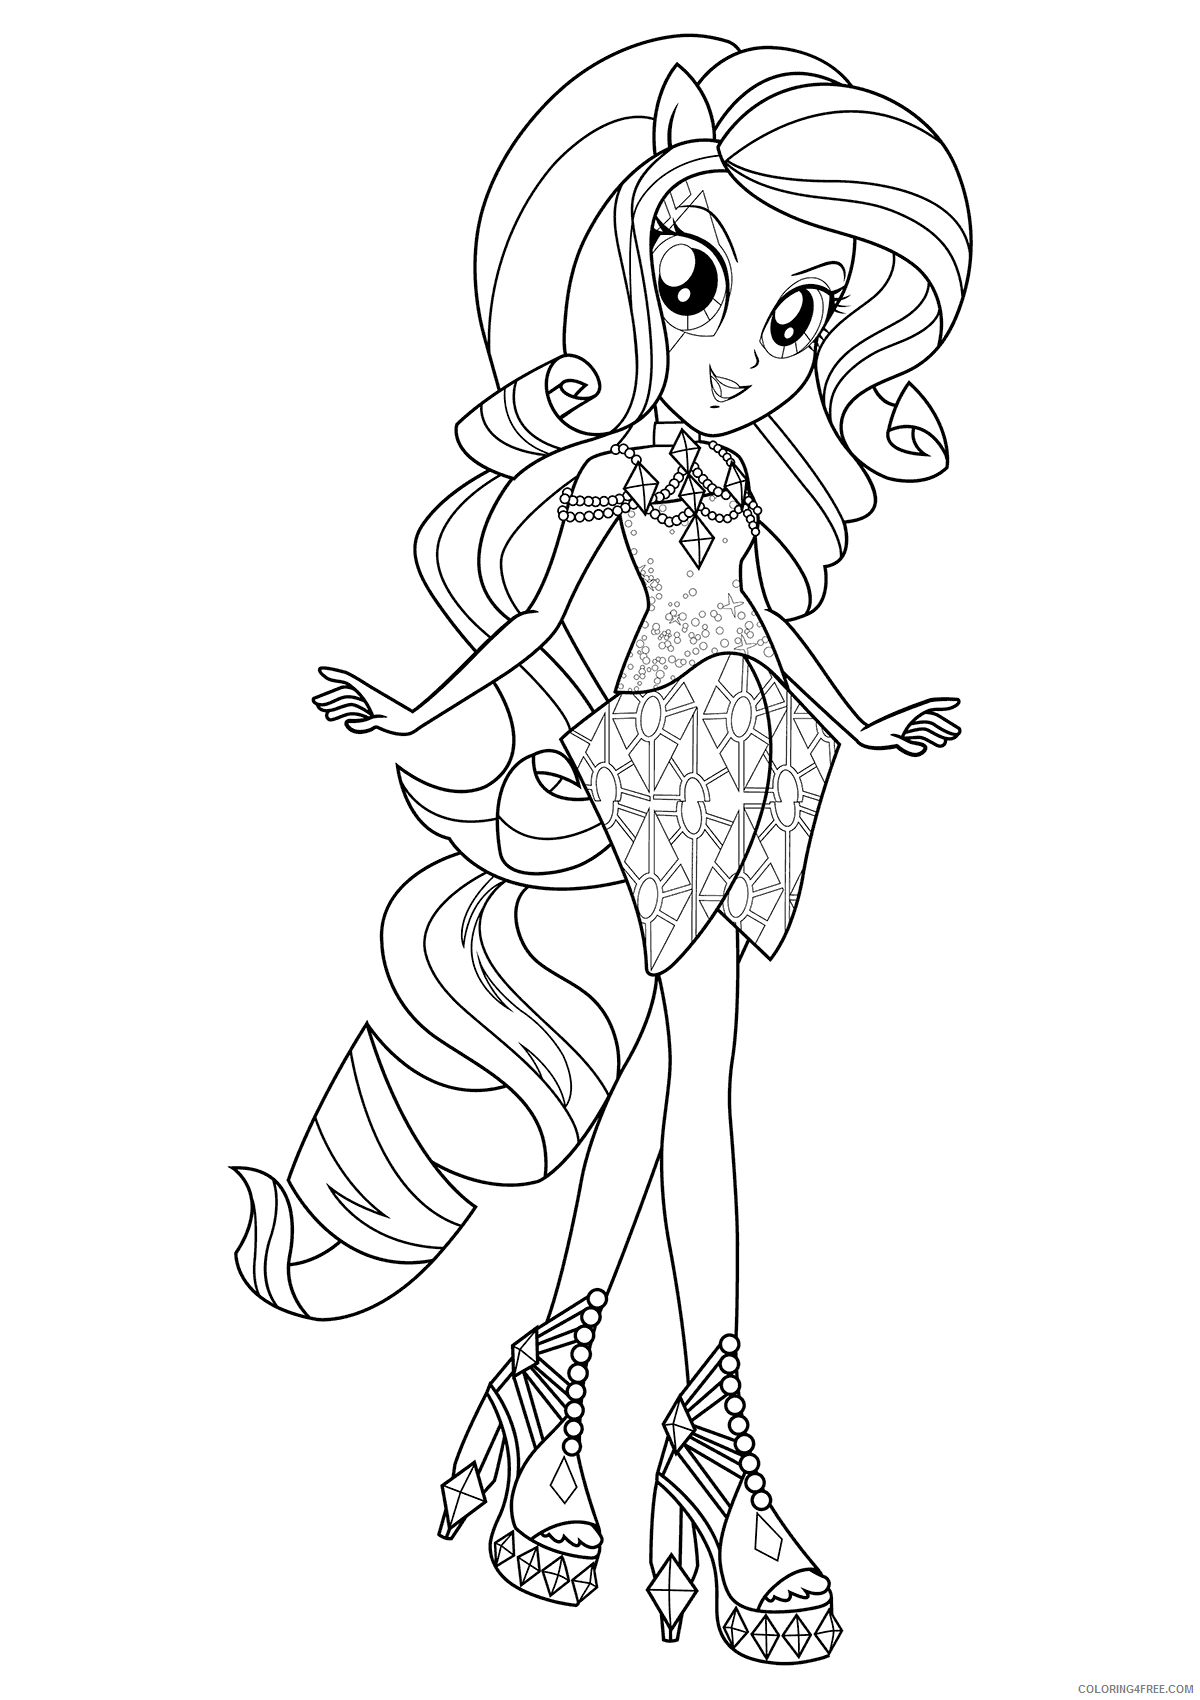 My Little Pony Equestria Girls Coloring Pages Cartoons Print Equestria Girls Printable 2020 4615 Coloring4free Coloring4free Com